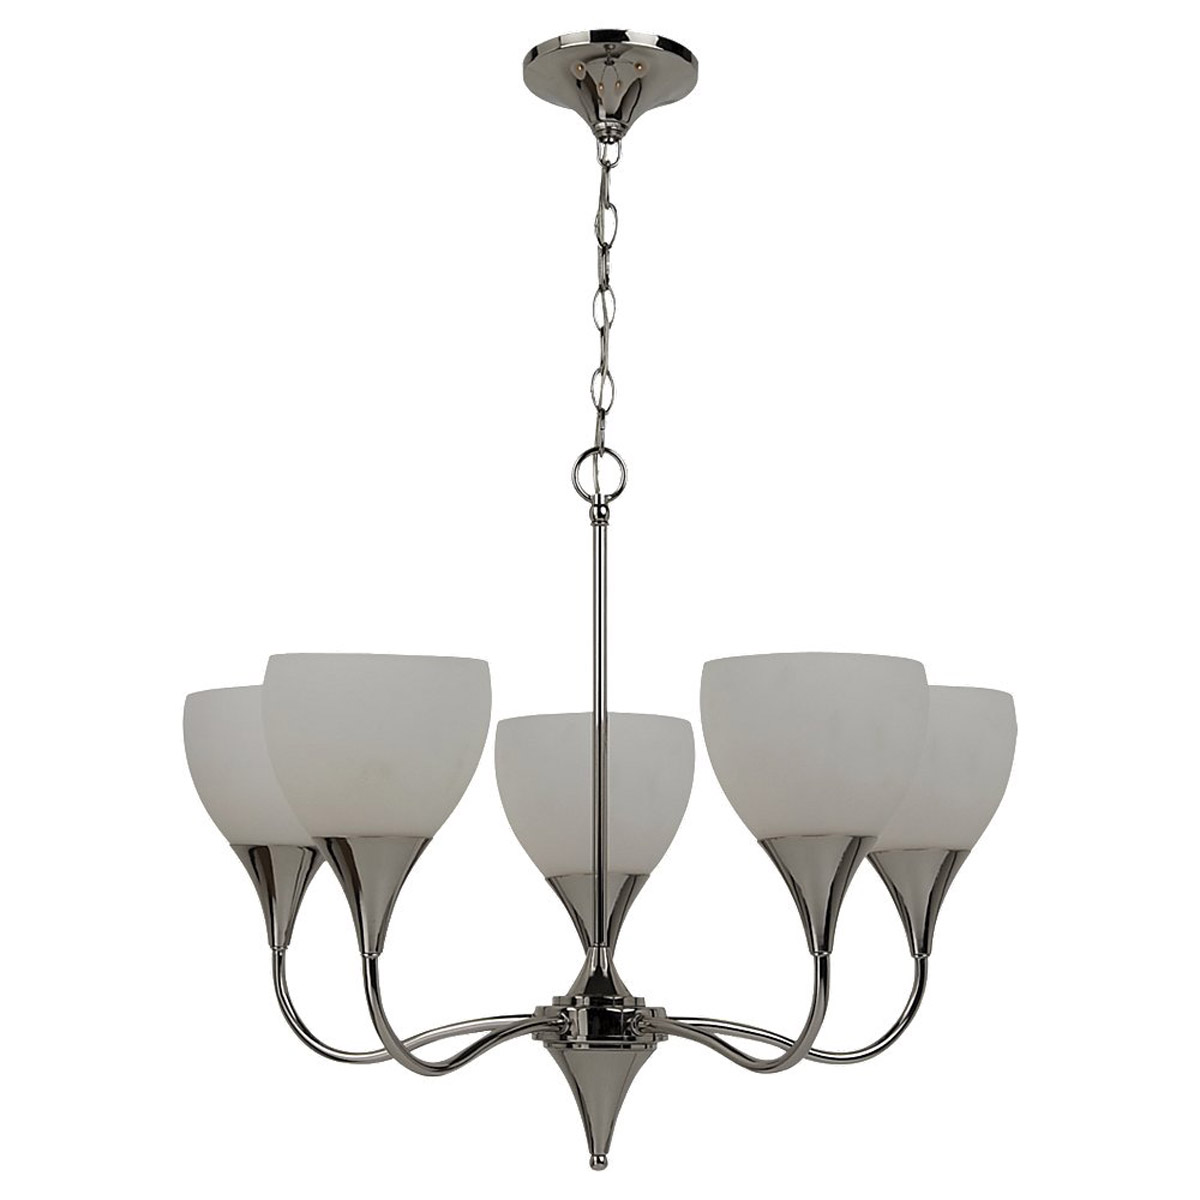 Sea Gull Lighting Solana 5 Light Chandelier in Polished Nickel 31961-841